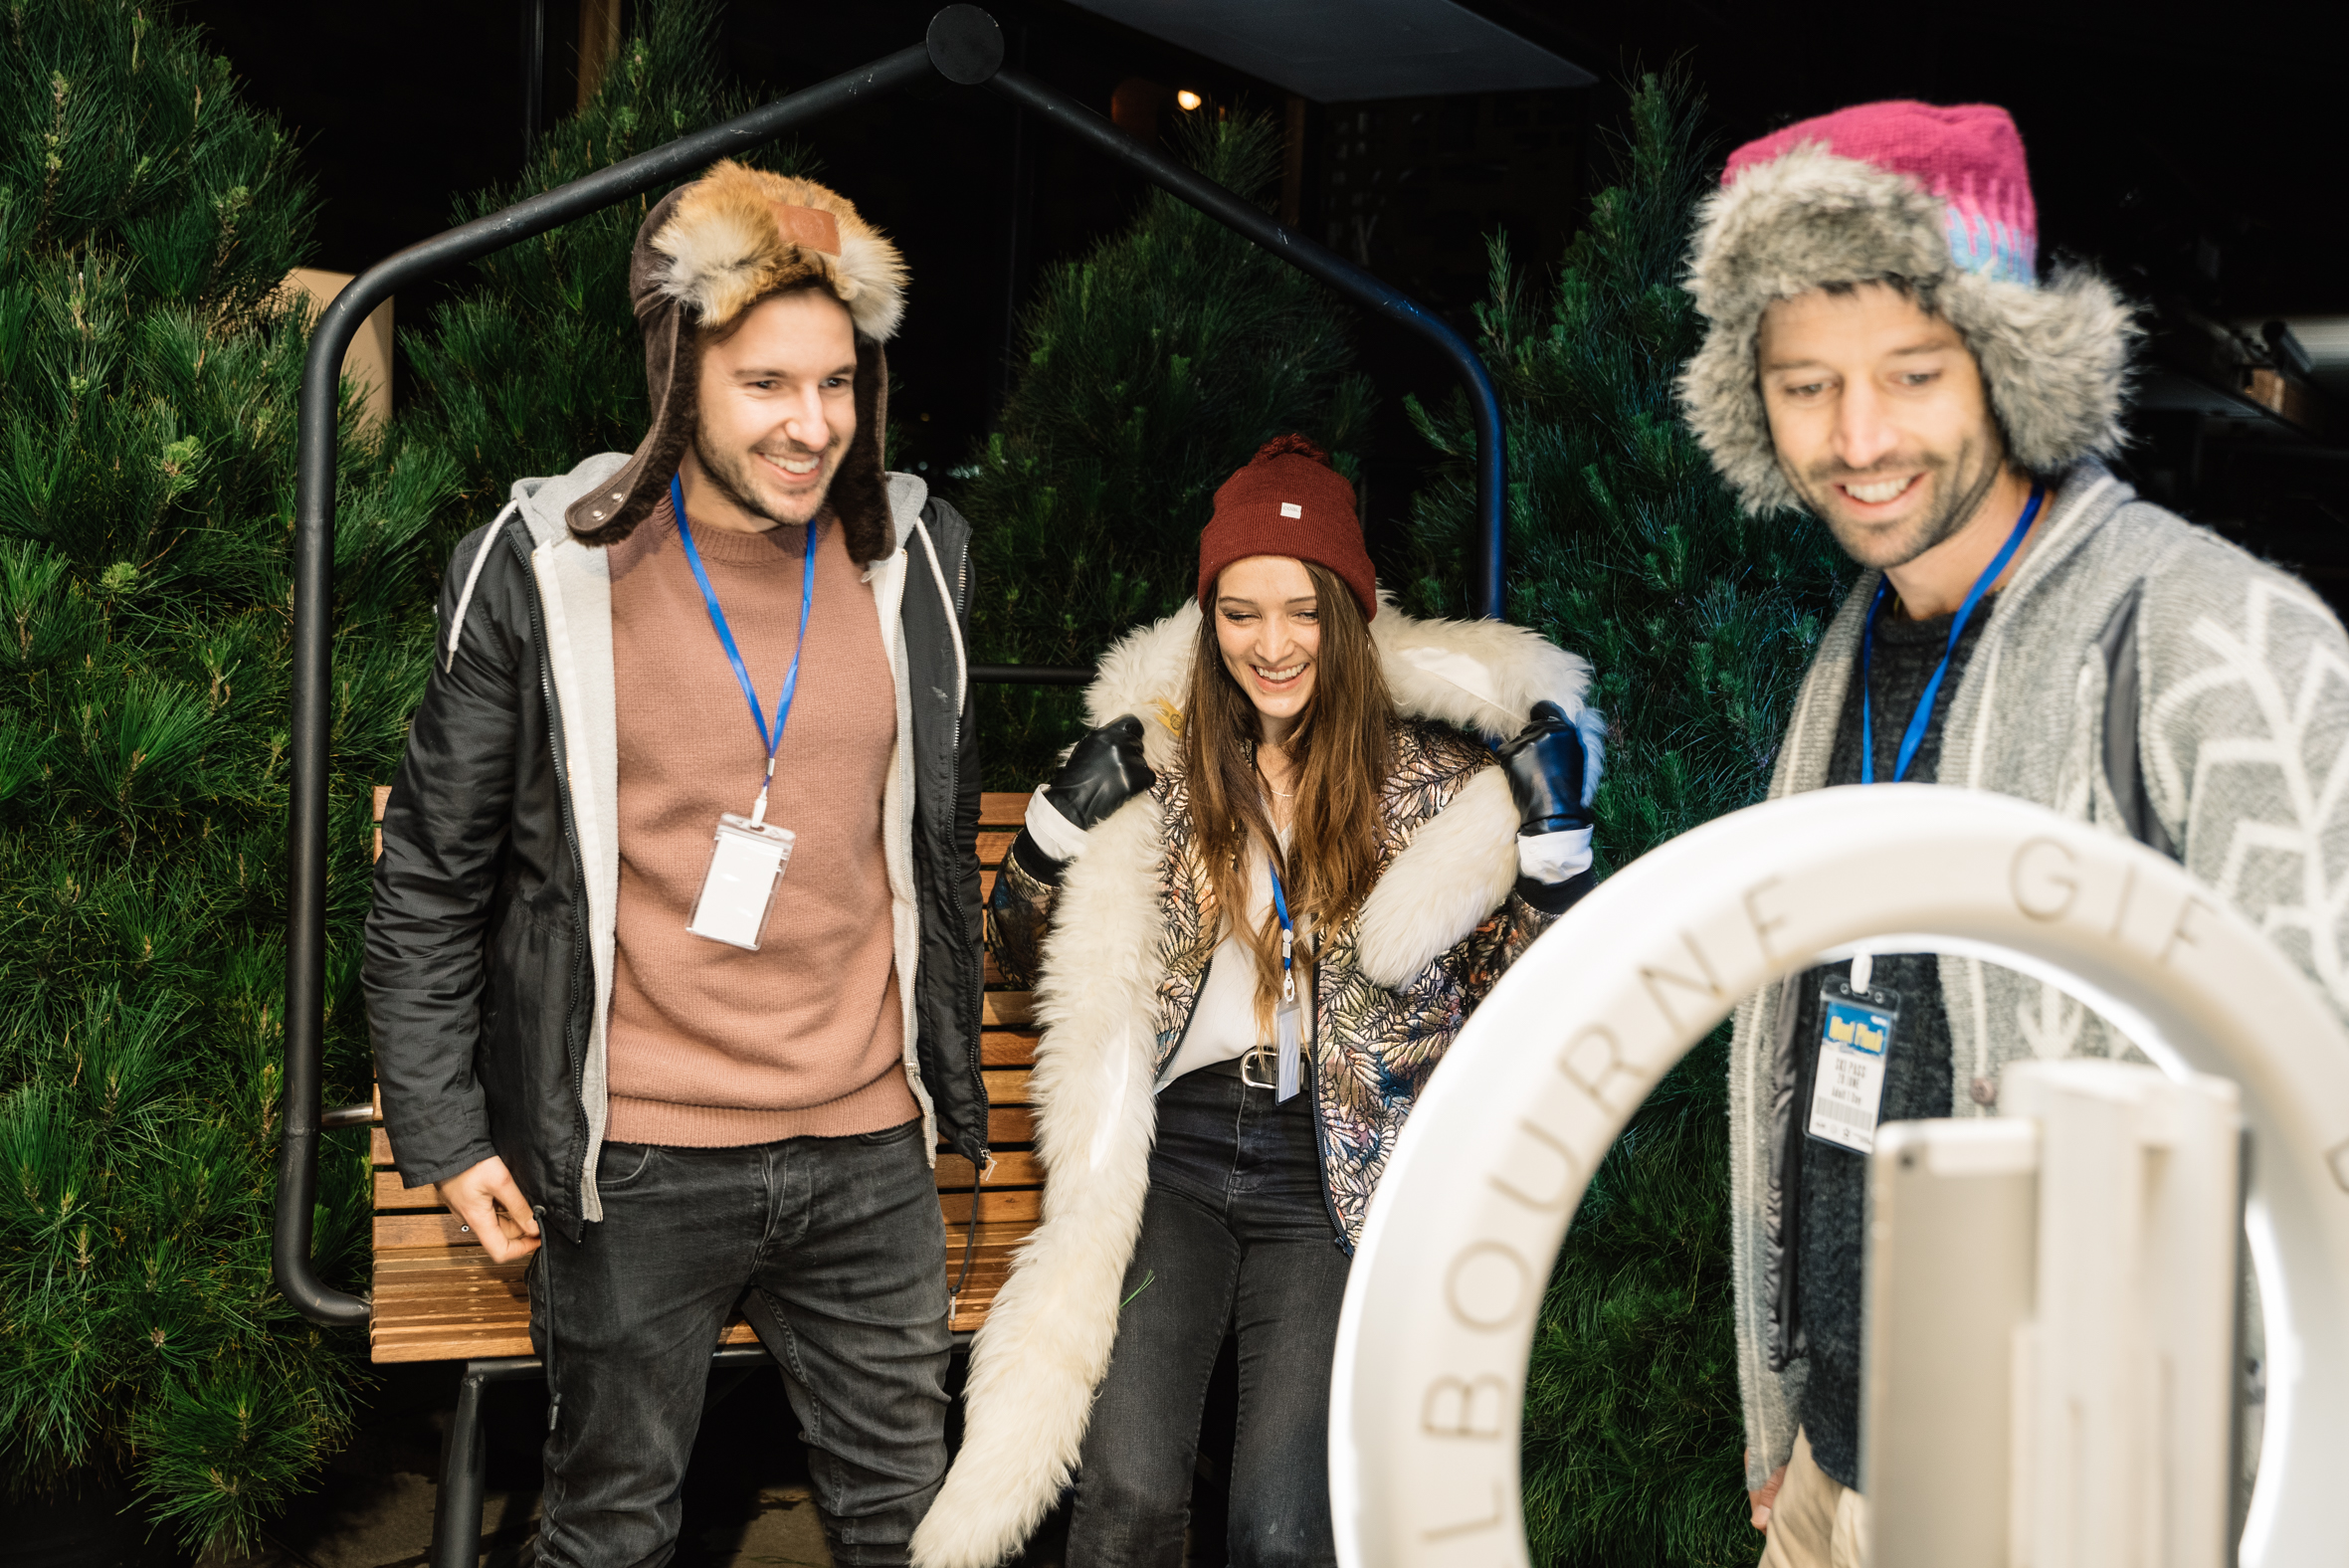 Mont Plonk Launch Party - Venue: Melbourne PublicMGB Highlights: Ever tried a shot-ski??